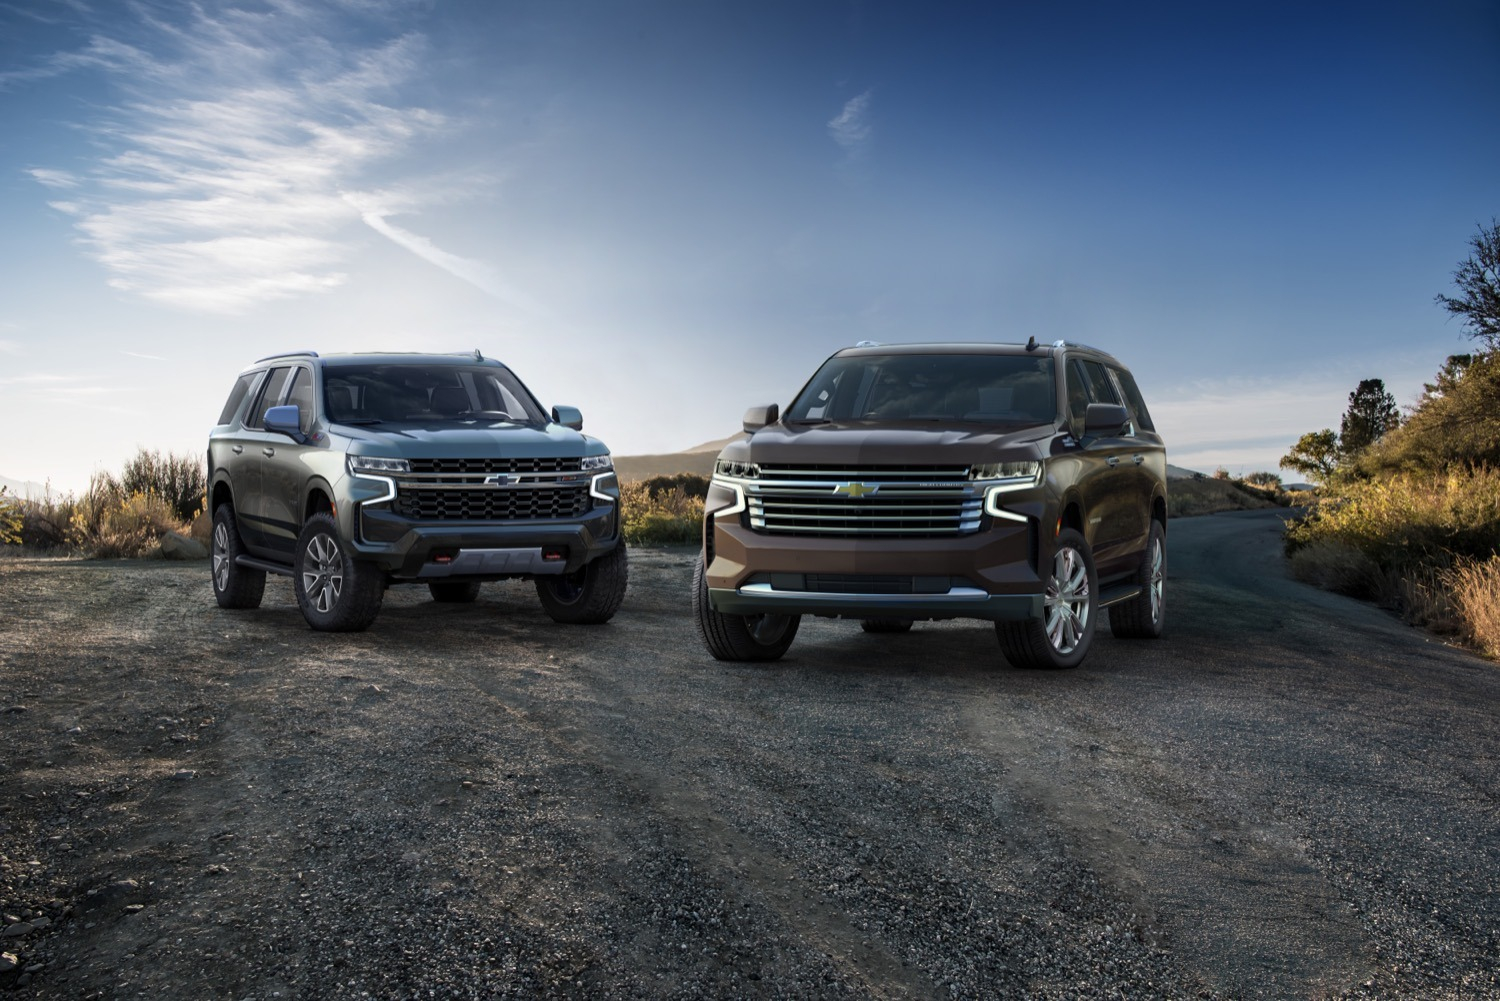 2021 Chevrolet Suburban, Chevy Tahoe Air Suspension Modes New 2021 Buick Verano Upgrades, Towing Capacity, Ground Clearance